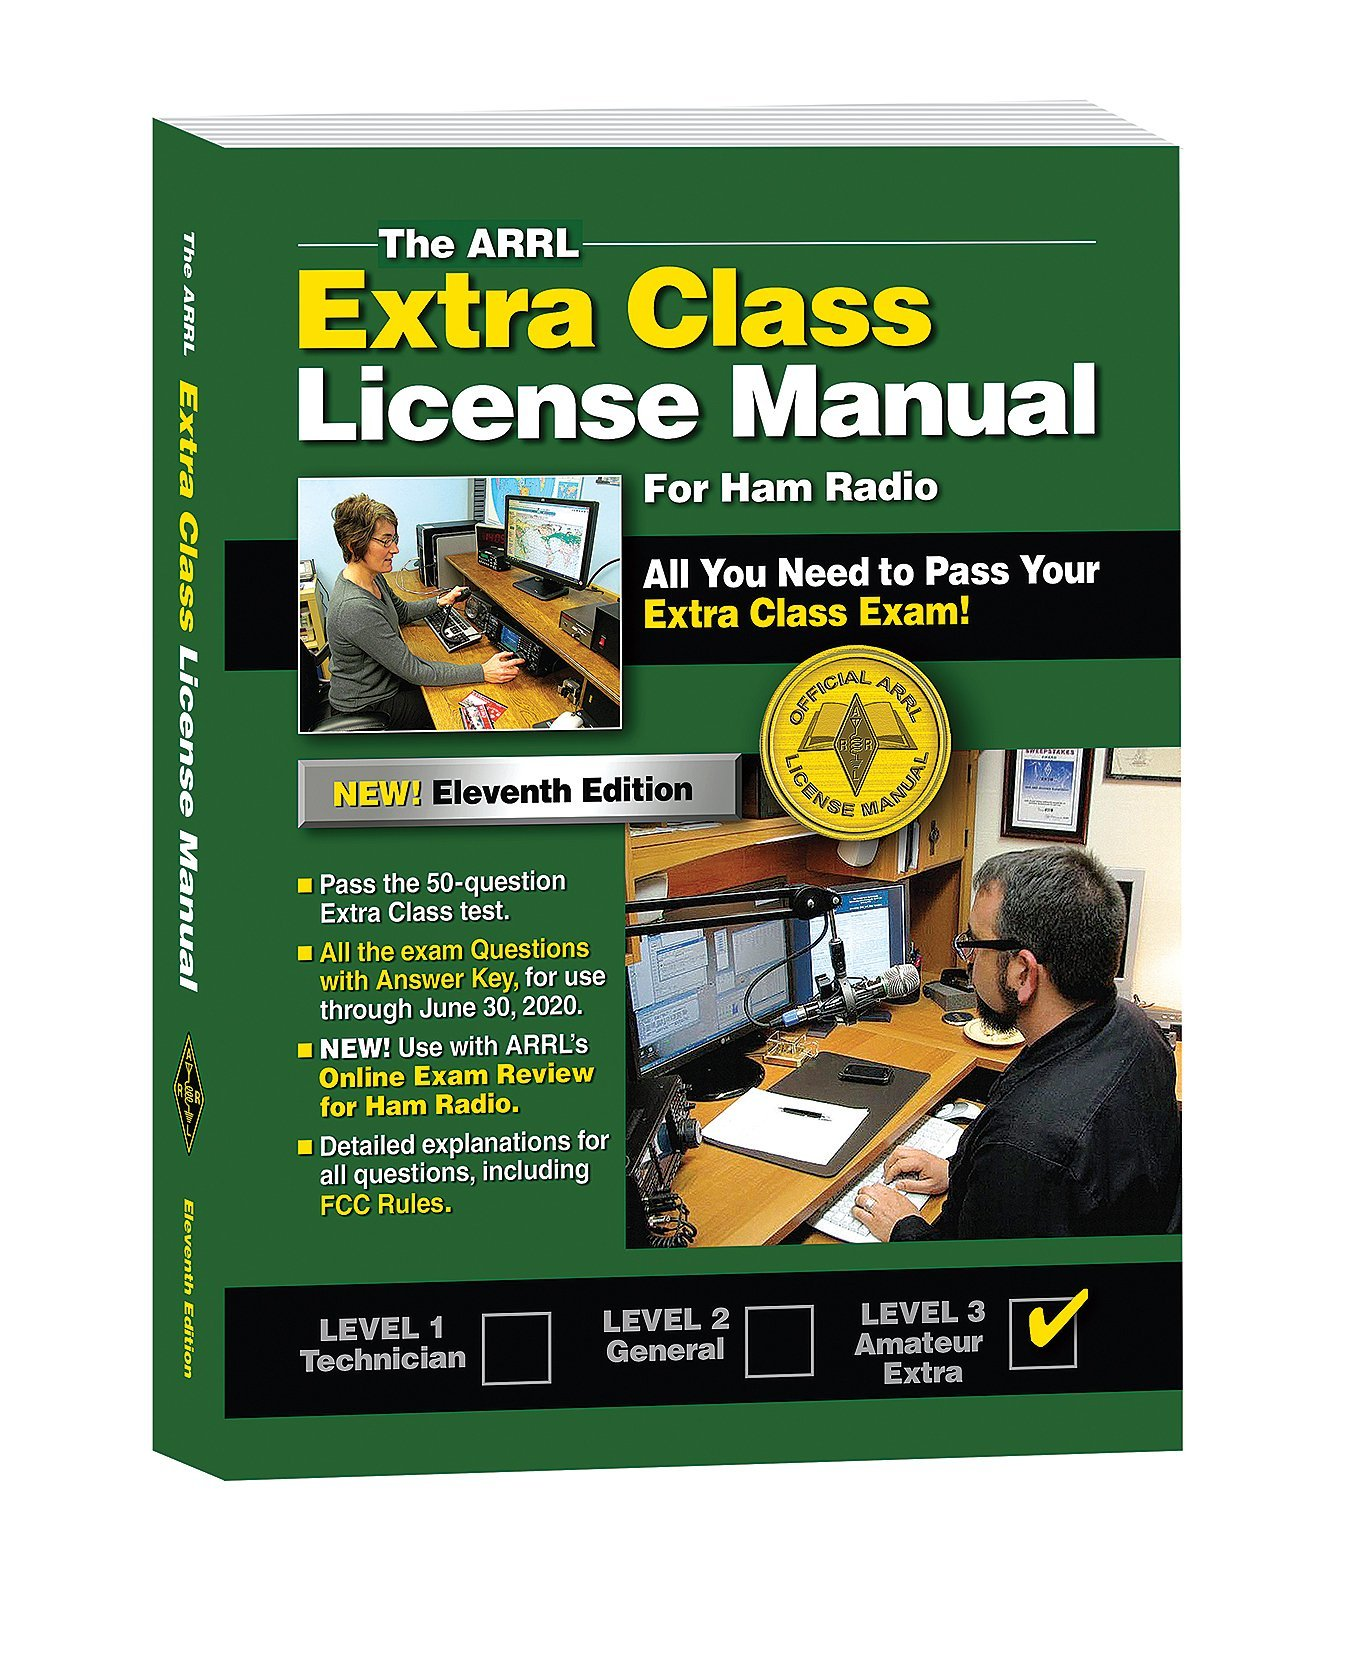 The arrl extra class license manual arrl inc 9781625950451 amazon the arrl extra class license manual arrl inc 9781625950451 amazon books fandeluxe Image collections